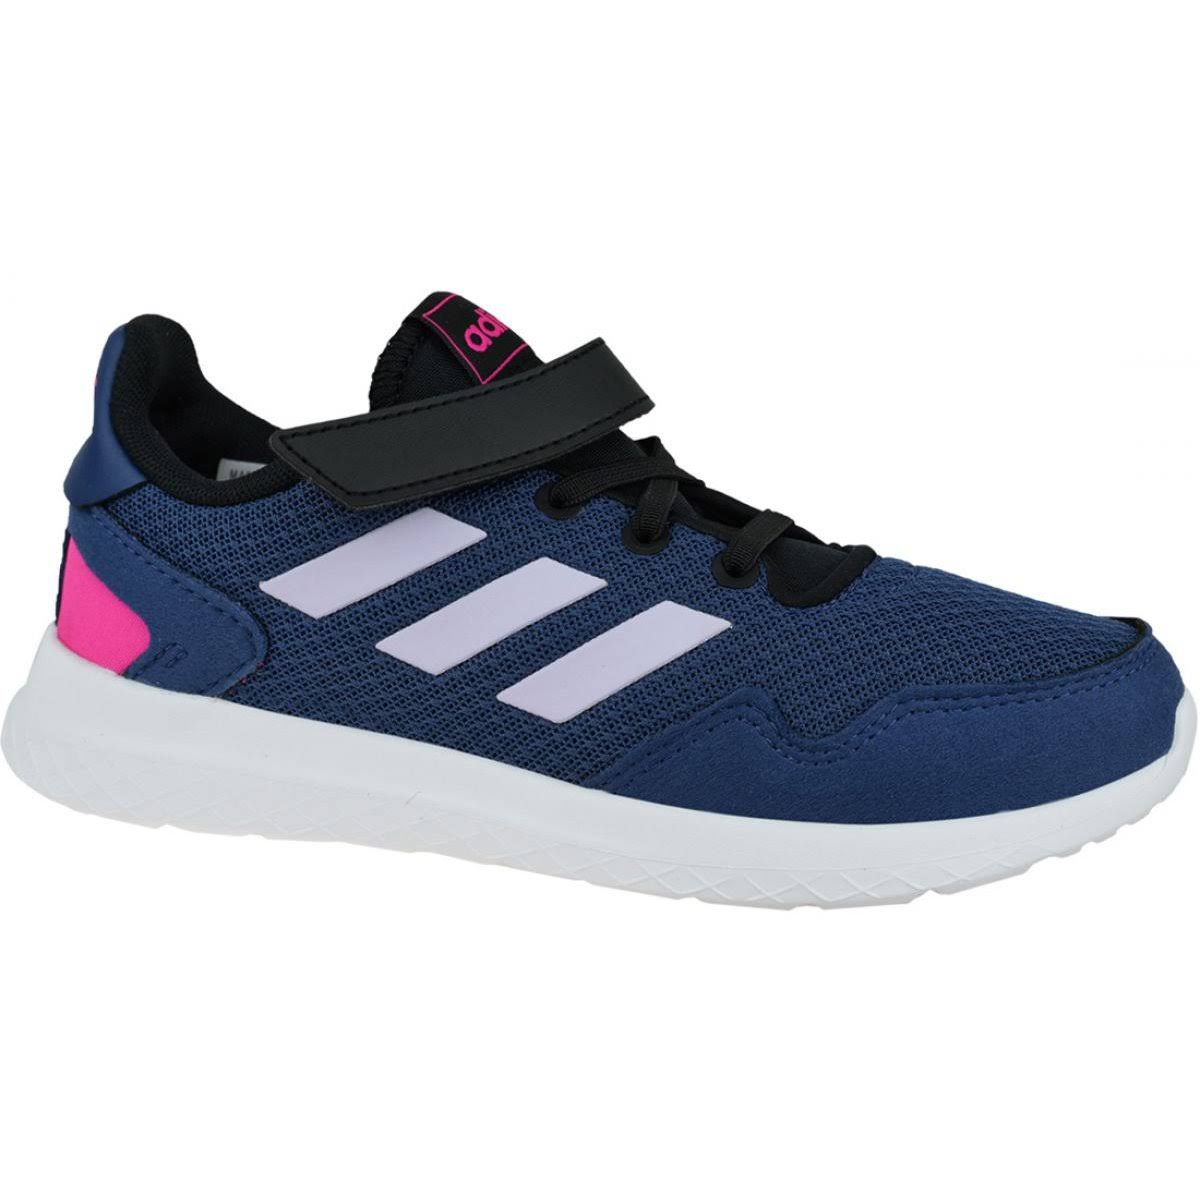 Adidas Archivo C JR EH0540 Shoes Navy